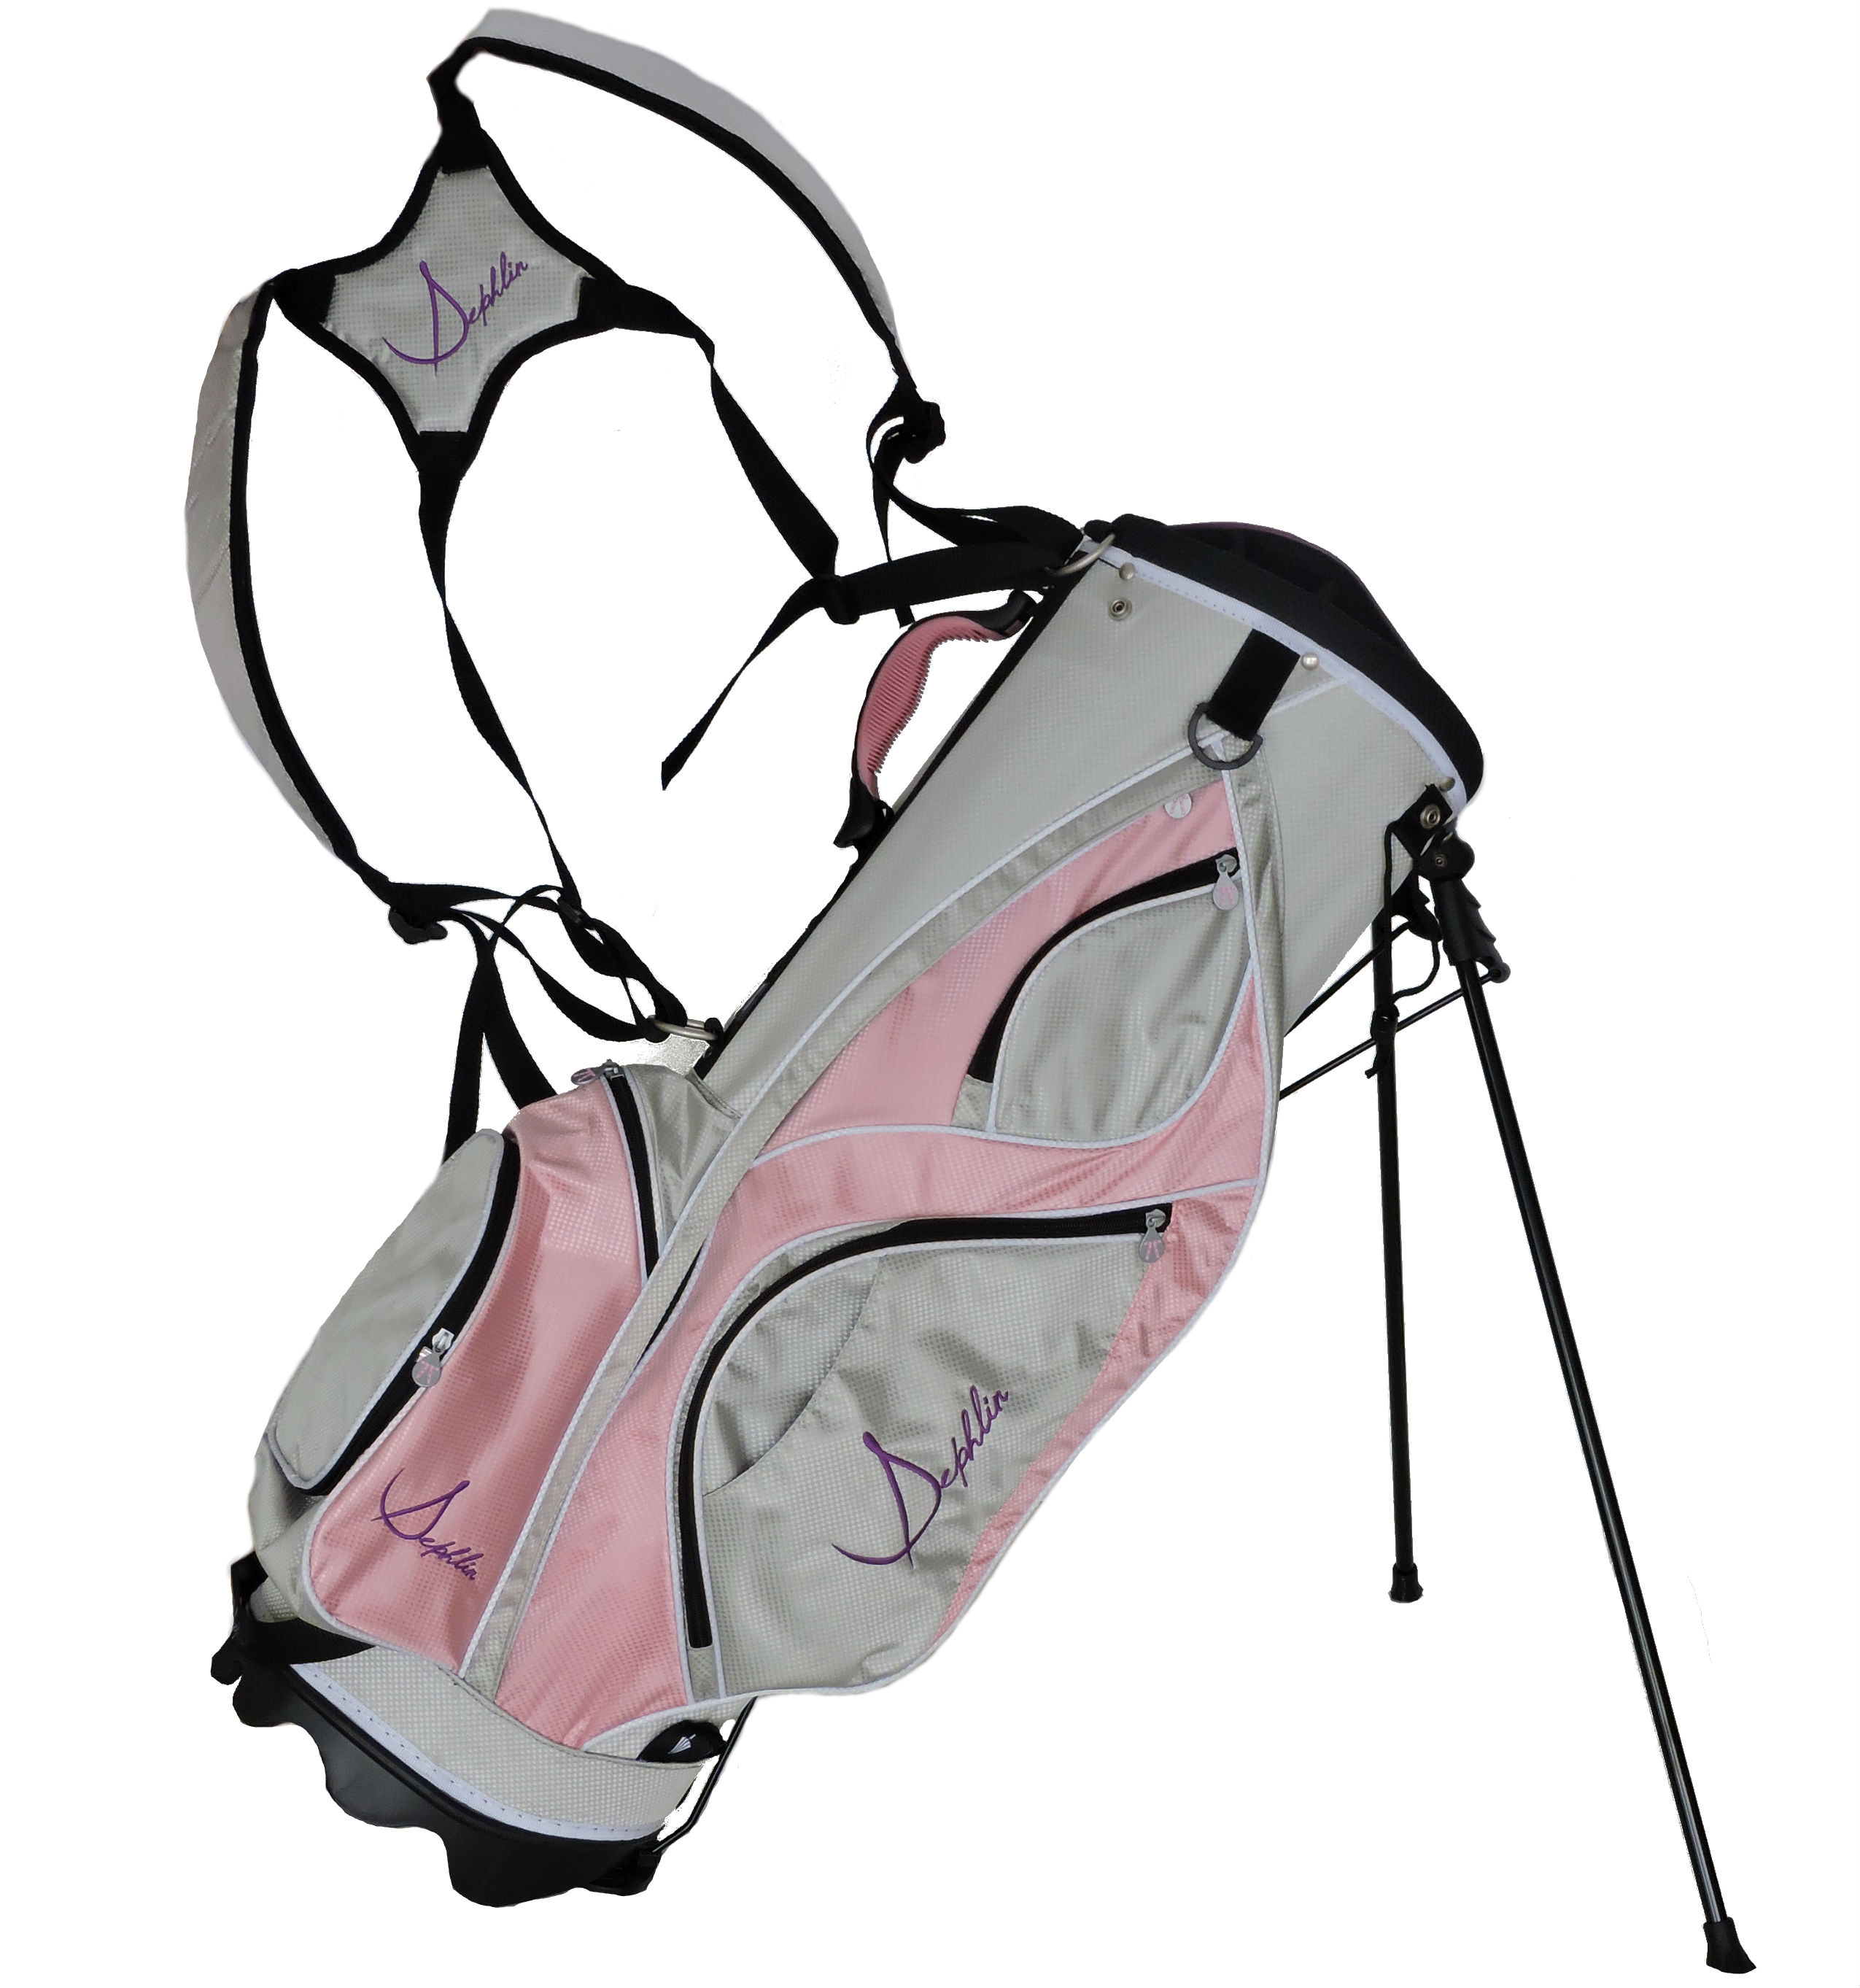 Sephlin - Sephlin Wo Golf Bag on cartoon hat, cartoon men, cartoon bowling bag, cartoon camera, cartoon star, cartoon golfer, cartoon tennis bag, cartoon gloves, cartoon nut sack, cartoon wine bag, cartoon pool bag, cartoon butterfly, cartoon putter, cartoon school bag, cartoon beach bag, cartoon clubs, cartoon mother, cartoon traveling bag, cartoon baseball bag, cartoon shorts,